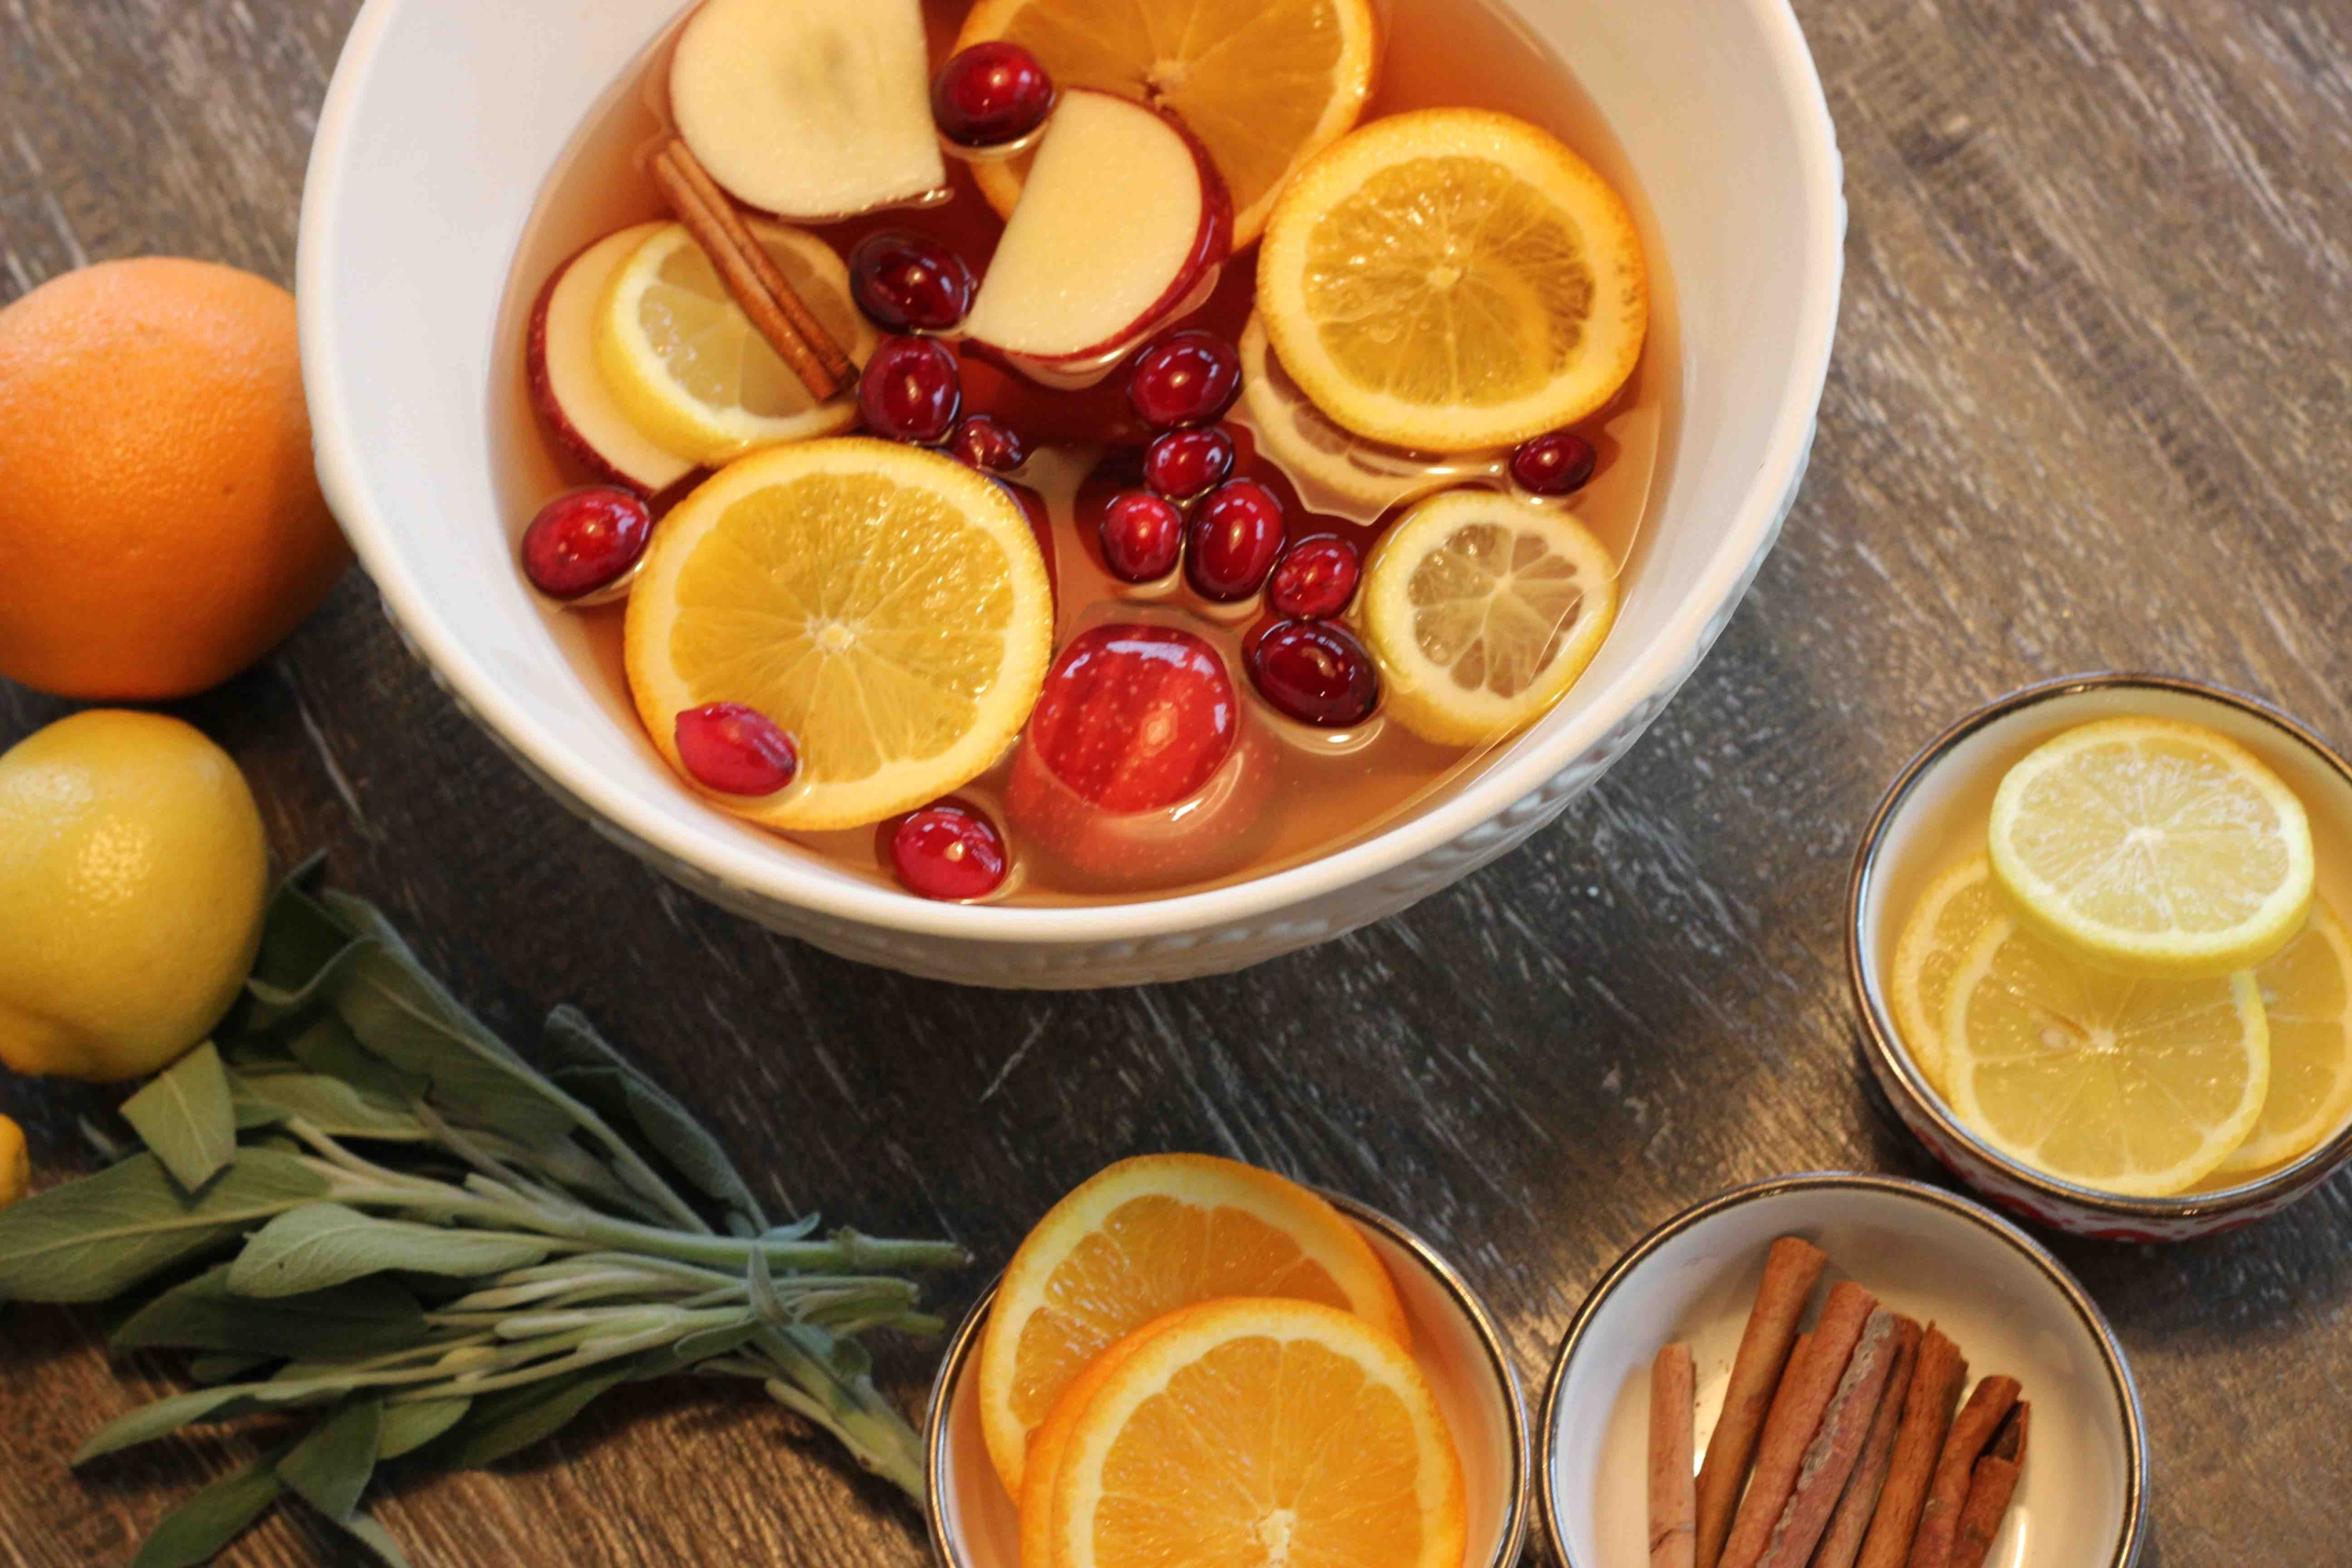 These Easy Holiday Cocktails Are Bound To Make Your Spirits Bright